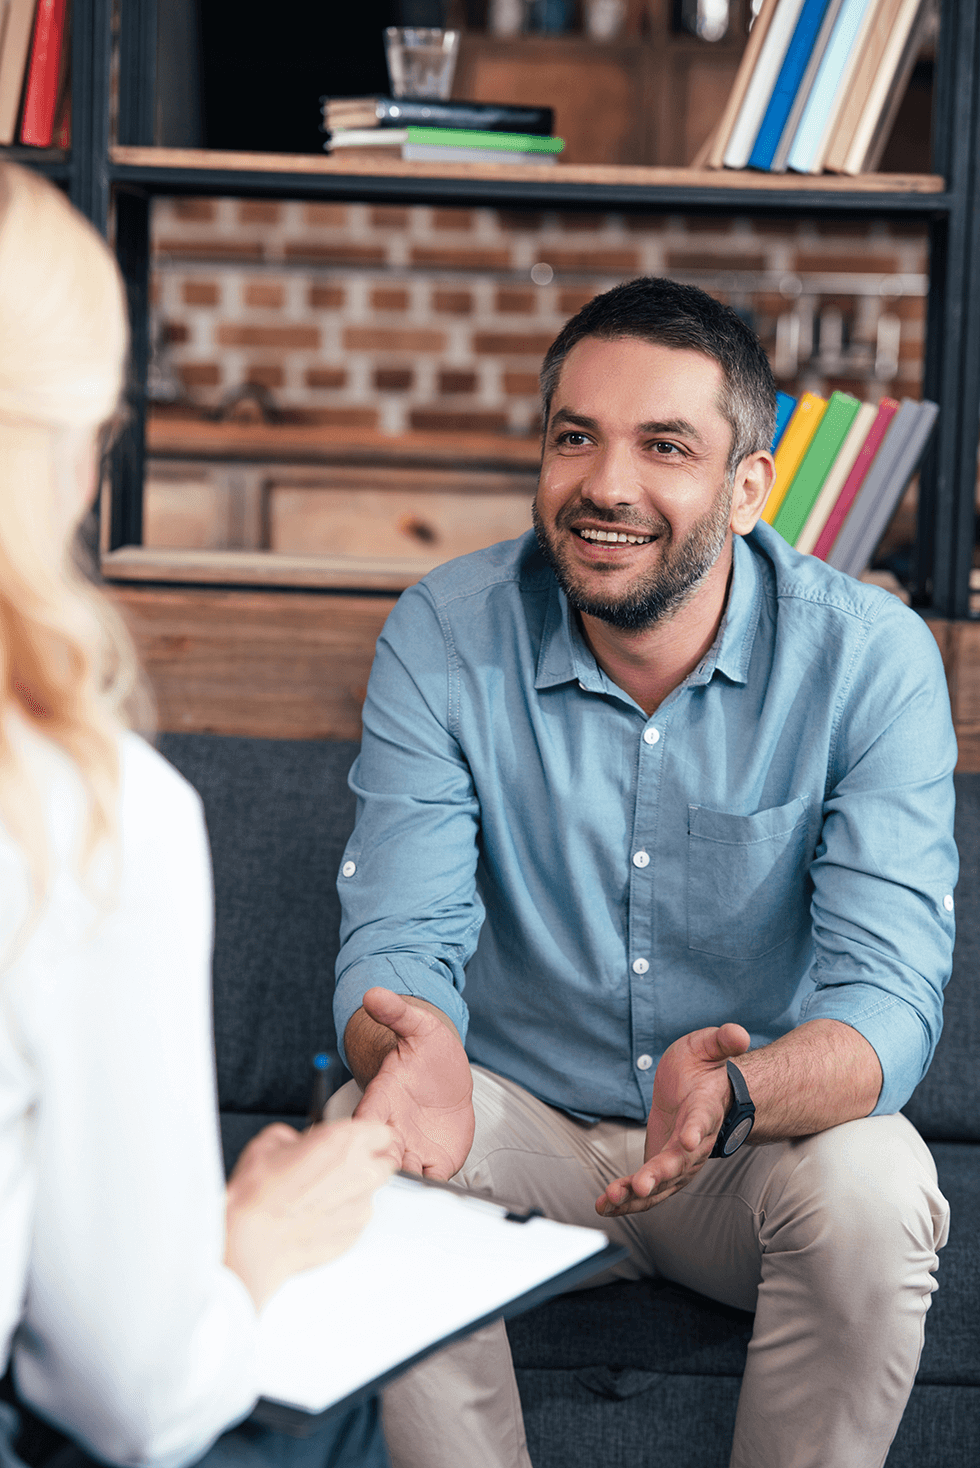 Man in an EMDR therapy session